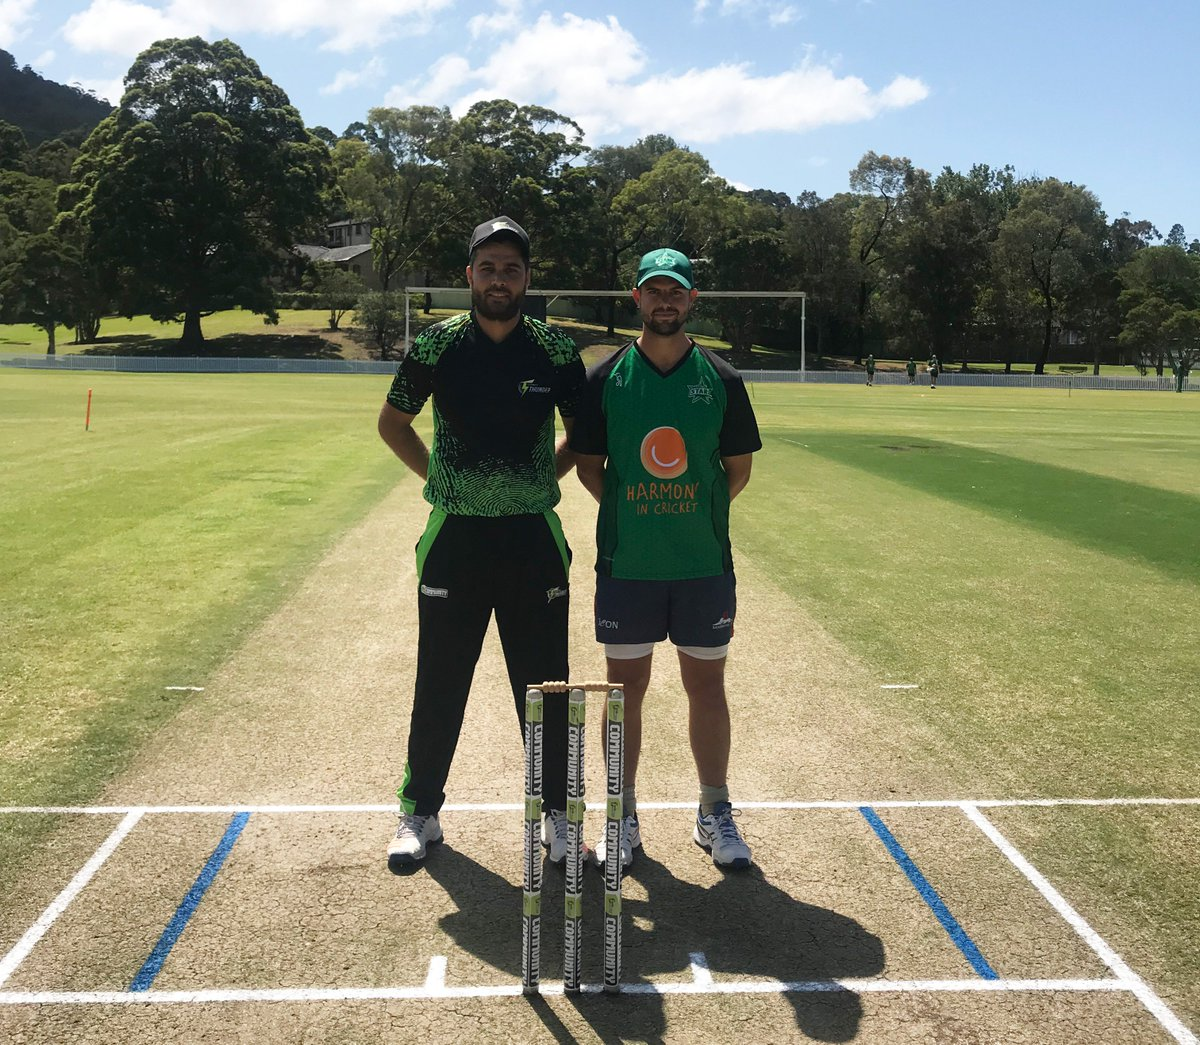 Perfect weather for our #MulticuturalT20 clash against @ThunderBBL in Wollongong 🌞  We've won the toss and are batting first. #TeamGreen